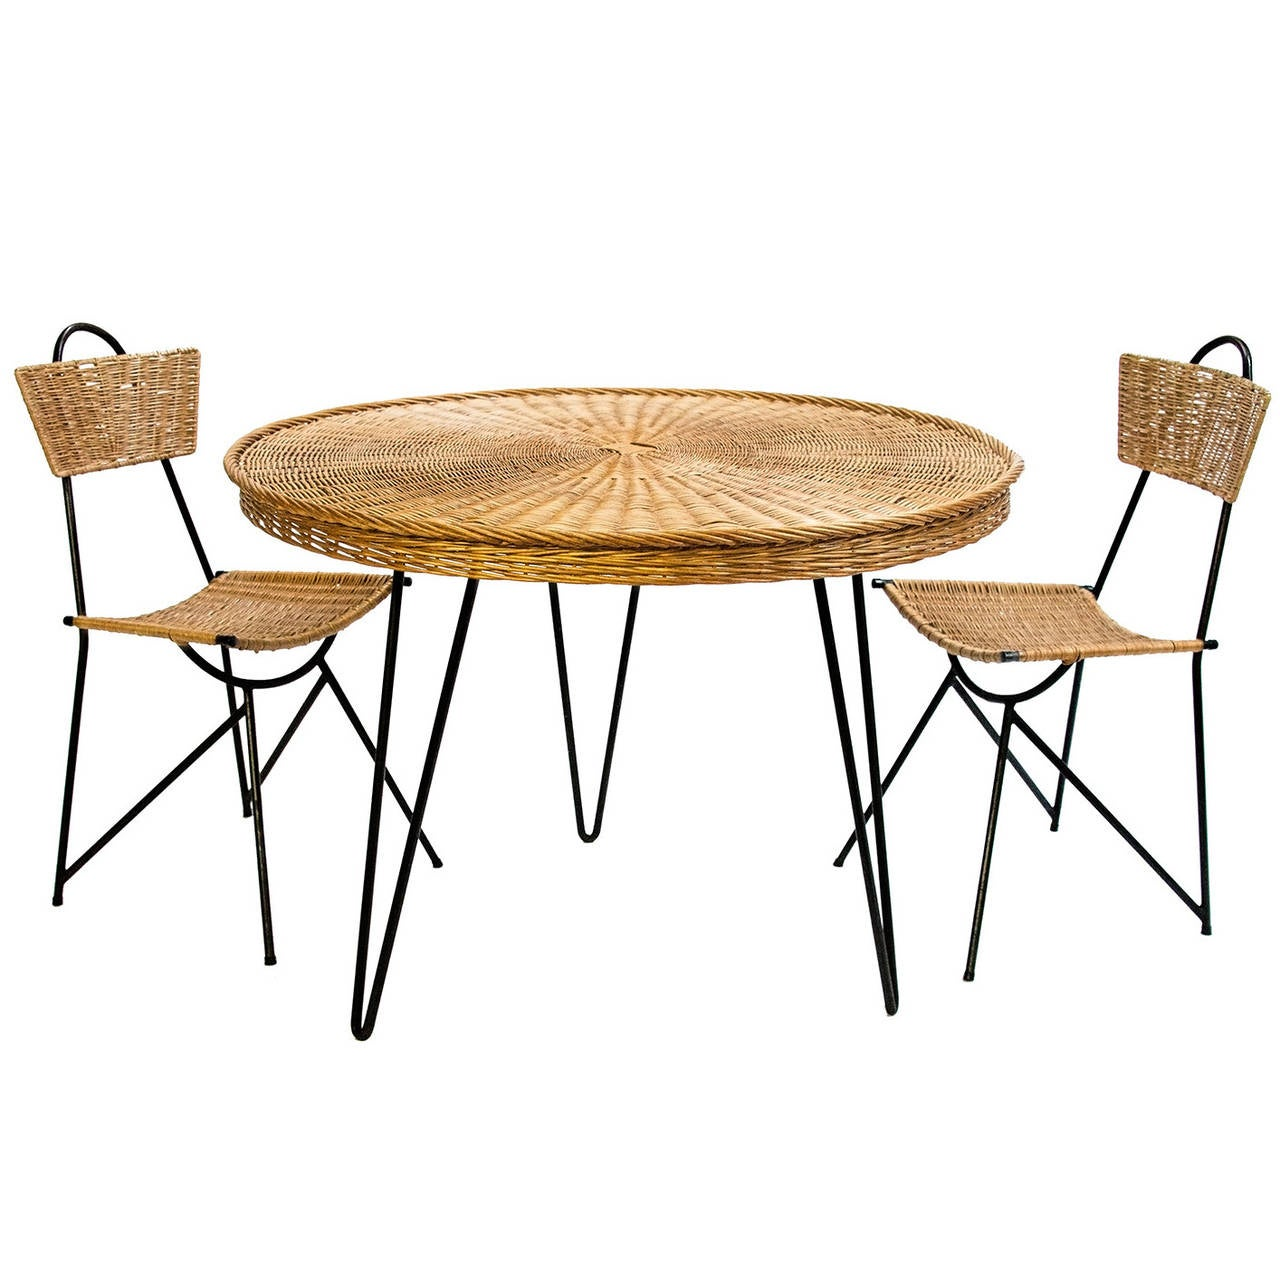 The set includes a round table and four chairs.  Overall chair dimensions: 33